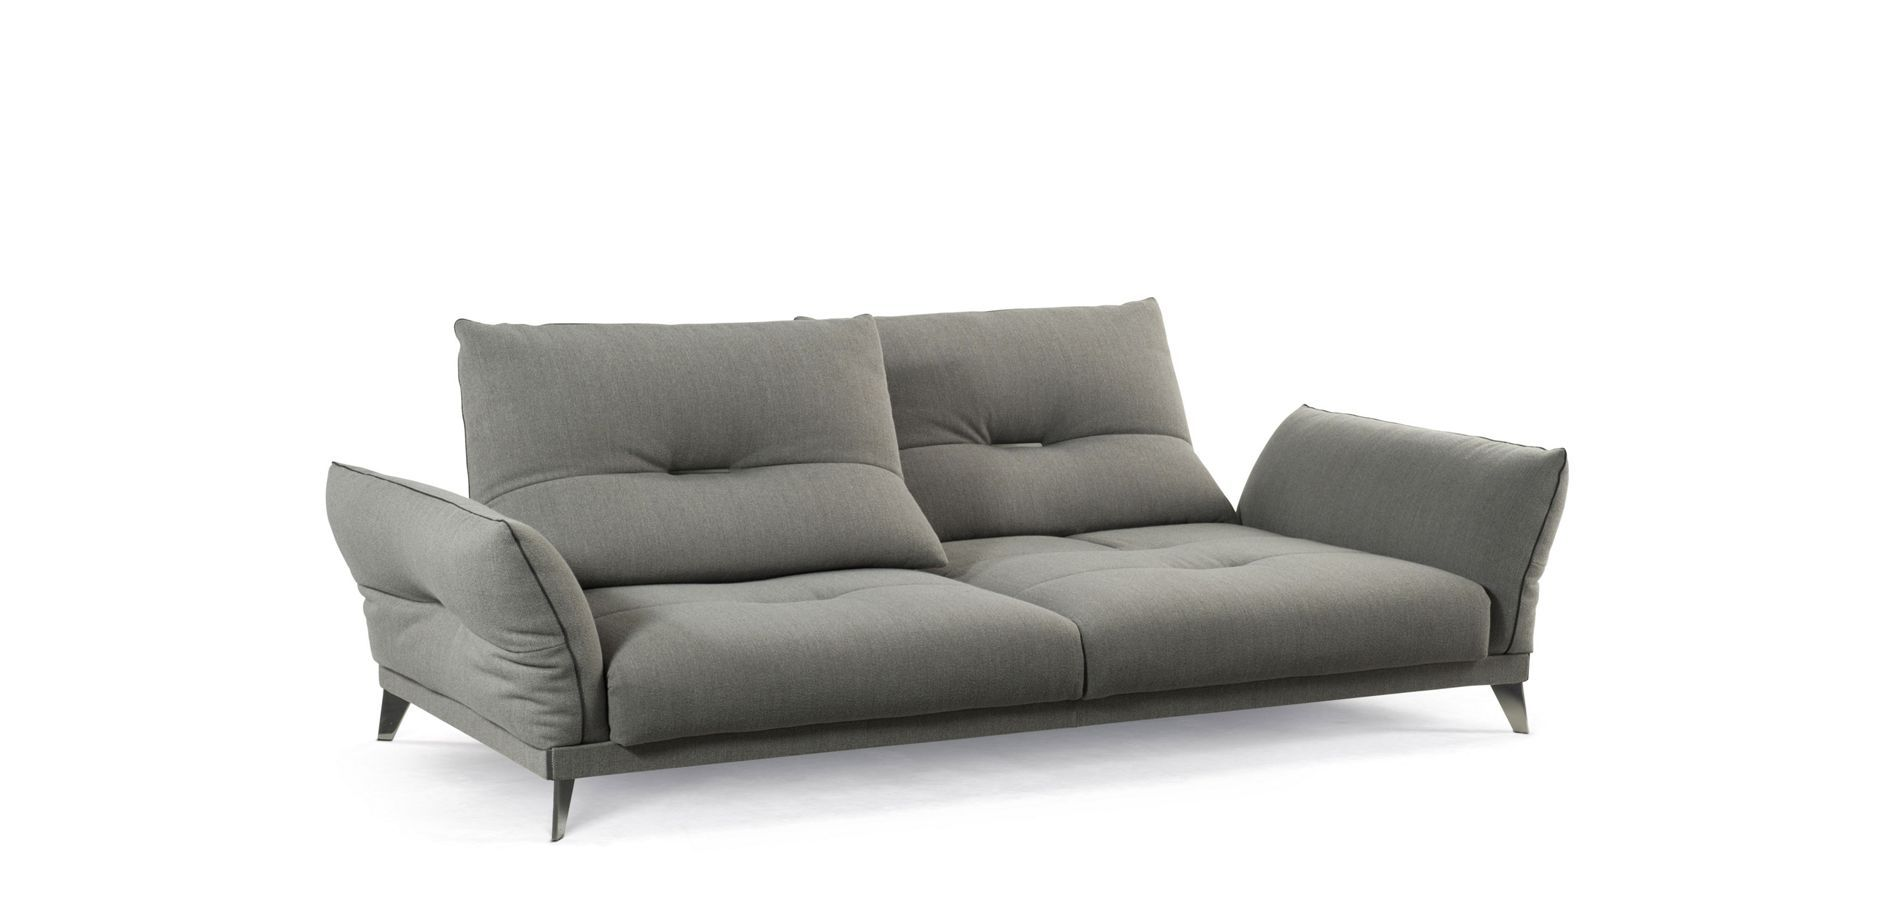 ITINÉRAIRE Large 3-seat sofa - picture 2 | FURNITURE/seating in 2019 ...